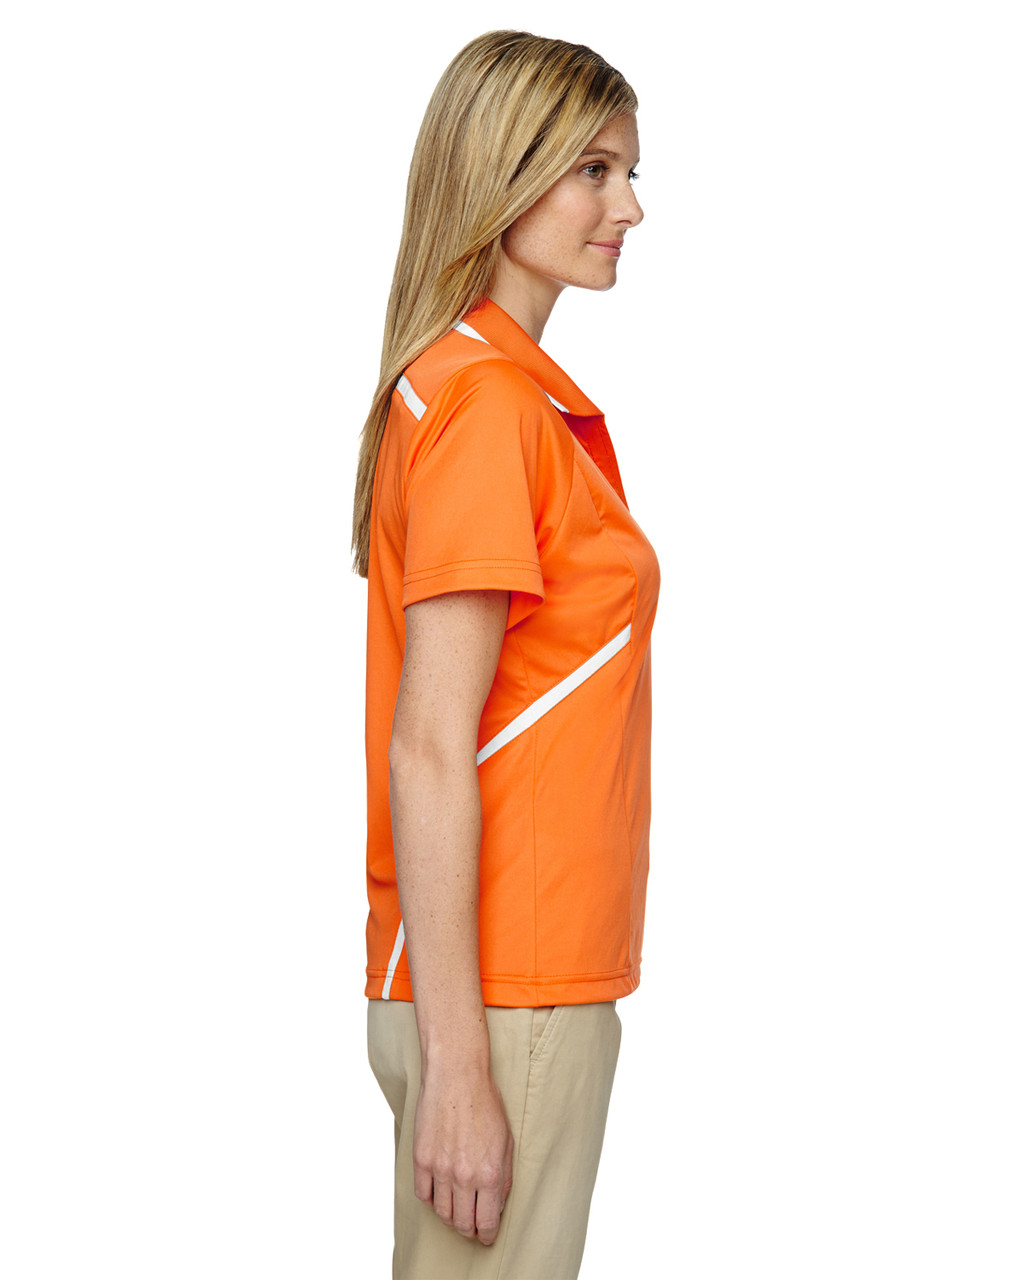 Amber Orange - Side, 75118 Ash City - Extreme Eperformance Propel Interlock Polo Shirt with Contrast Tape   BlankClothing.ca